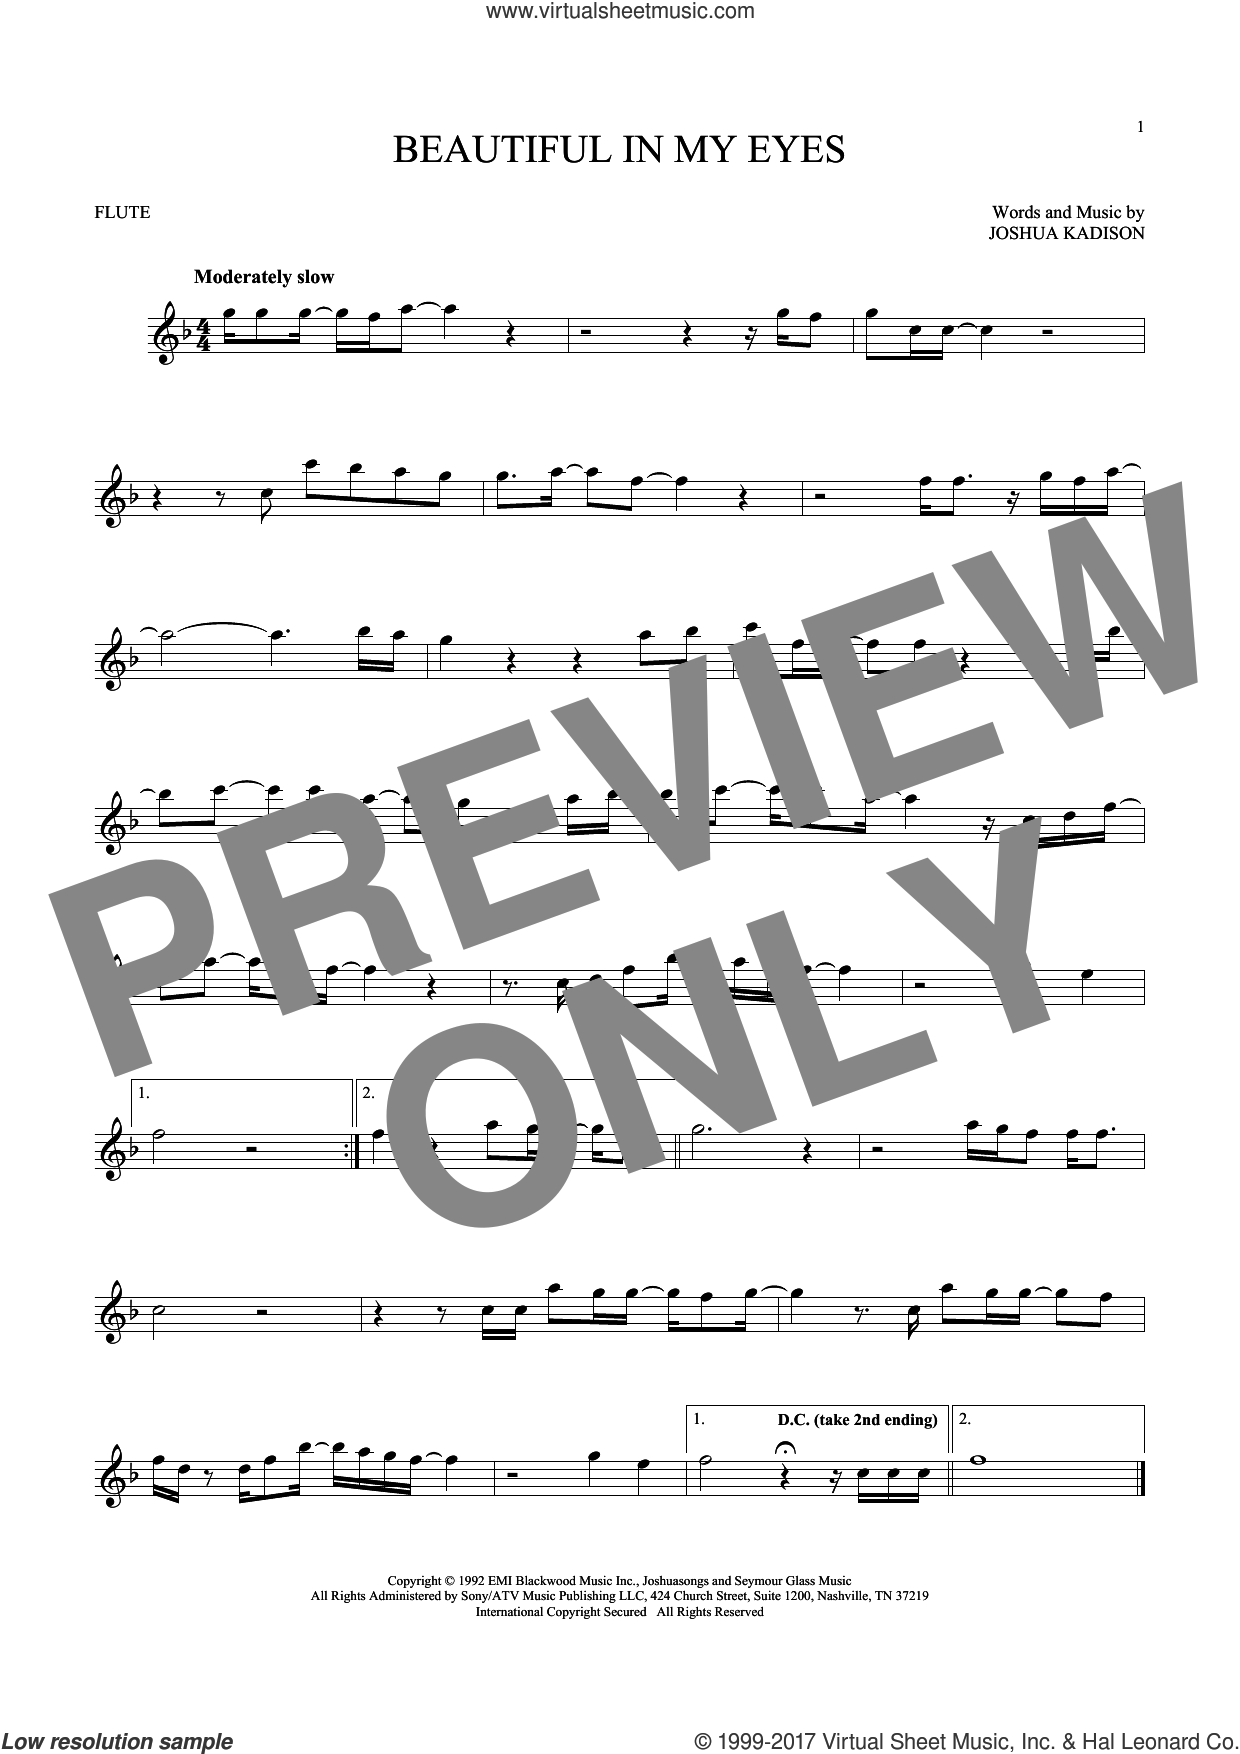 Beautiful In My Eyes sheet music for flute solo by Joshua Kadison, intermediate